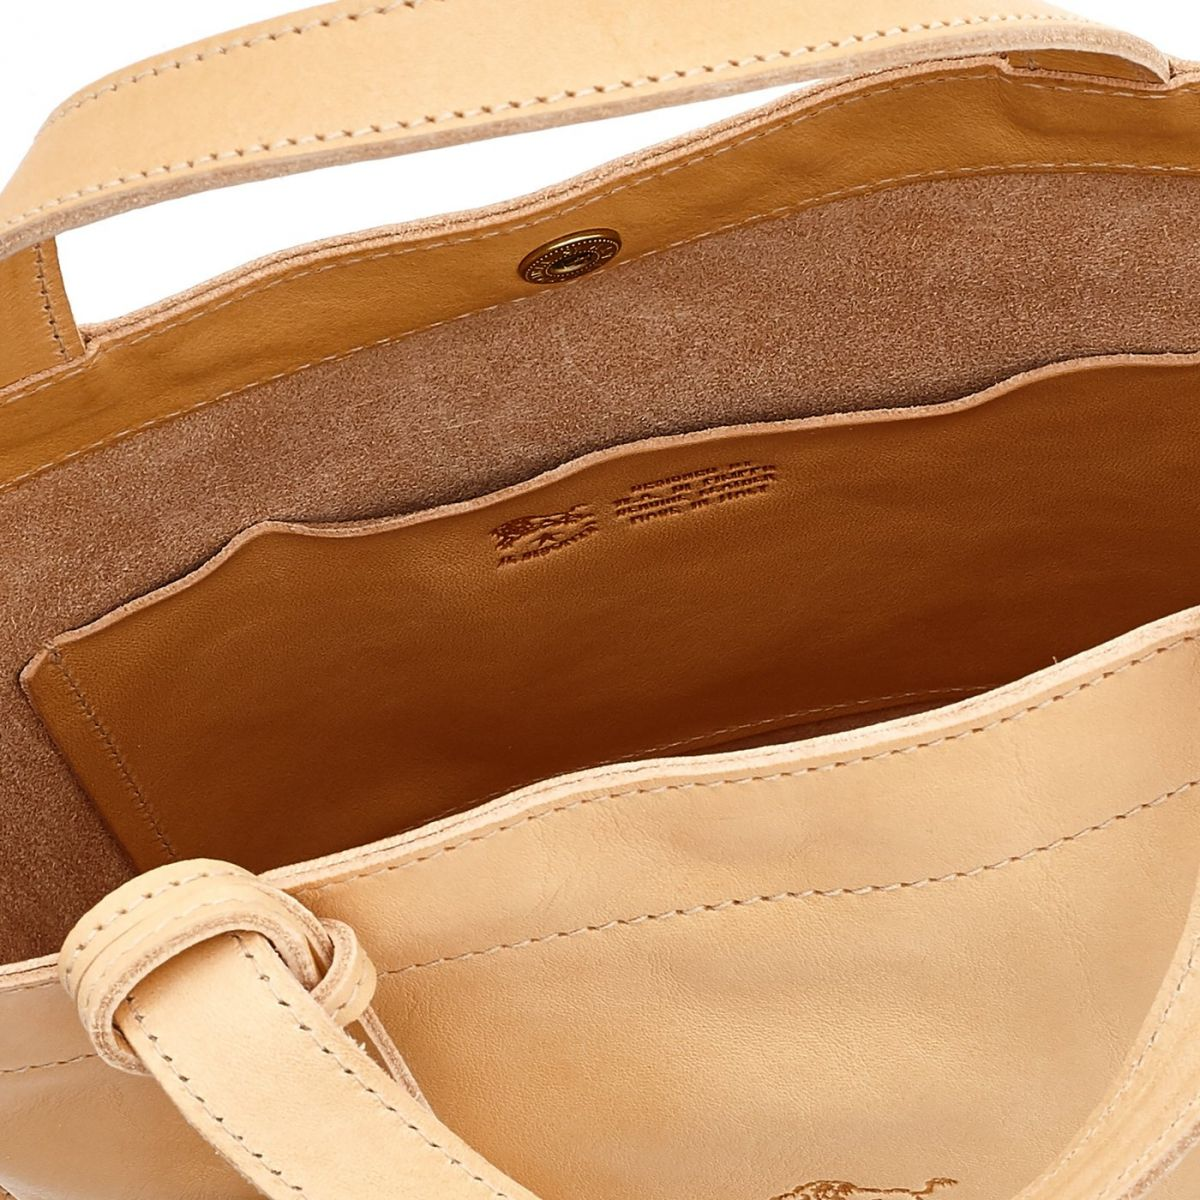 Women's Handbag Stibbert in Cowhide Double Leather BTH045 color Natural | Details